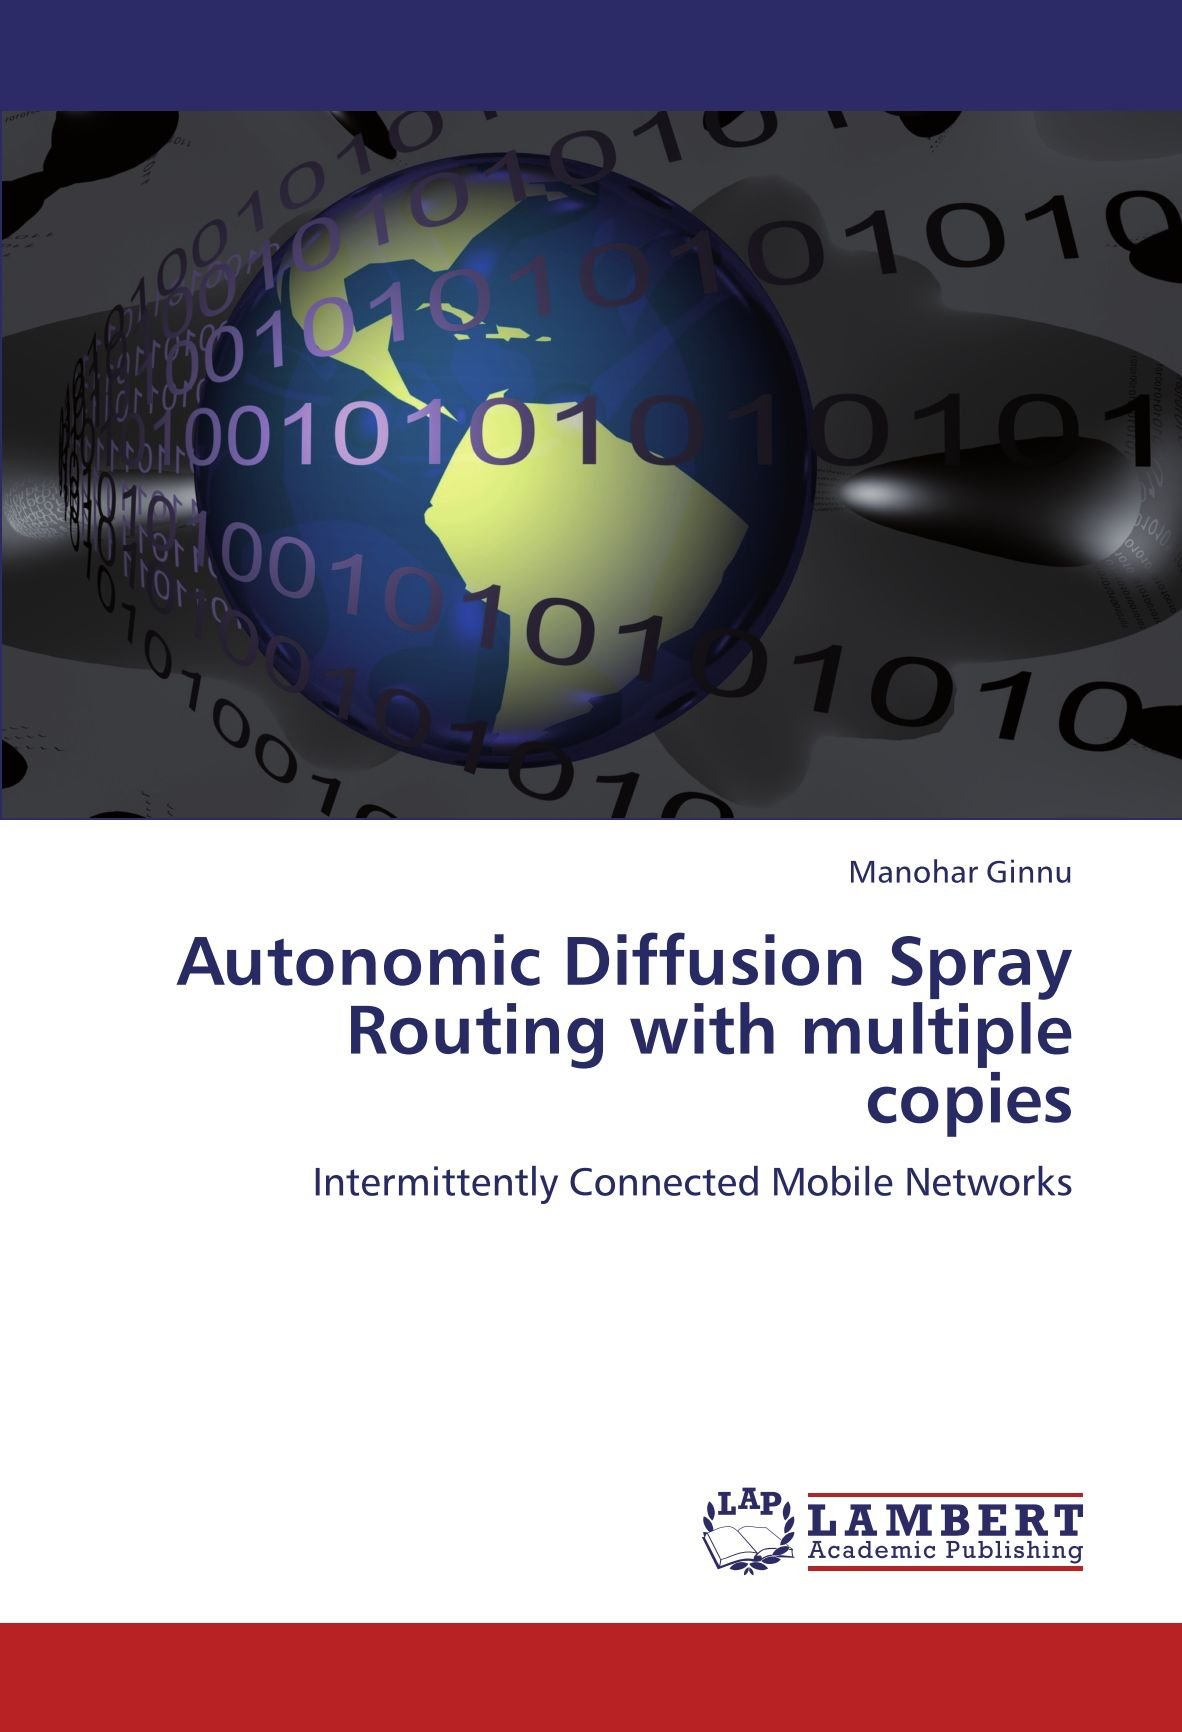 Autonomic Diffusion Spray Routing with multiple copies: Intermittently Connected Mobile Networks ebook